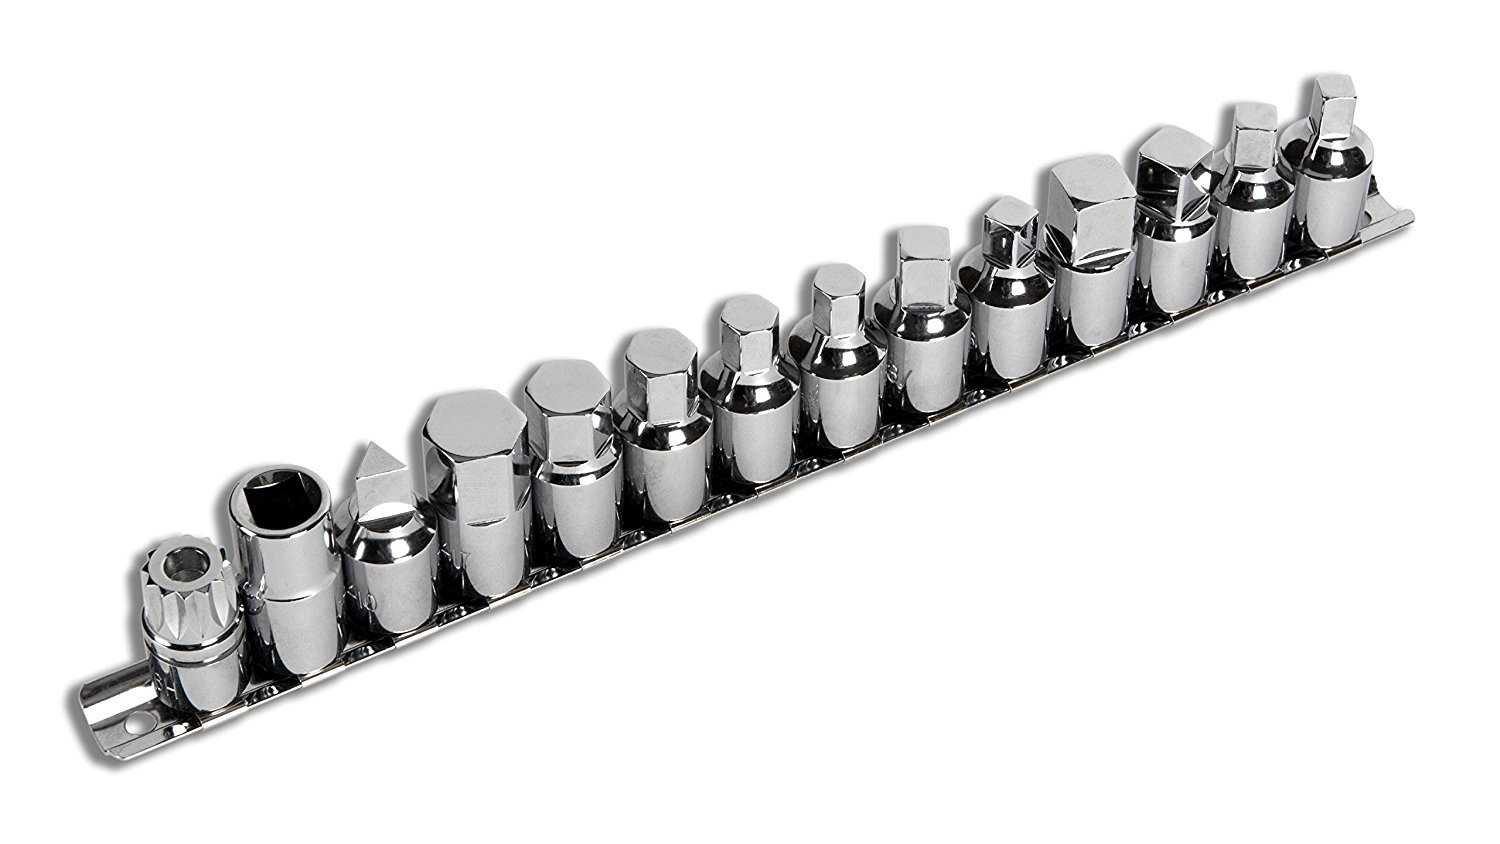 Drain Plug Socket Set